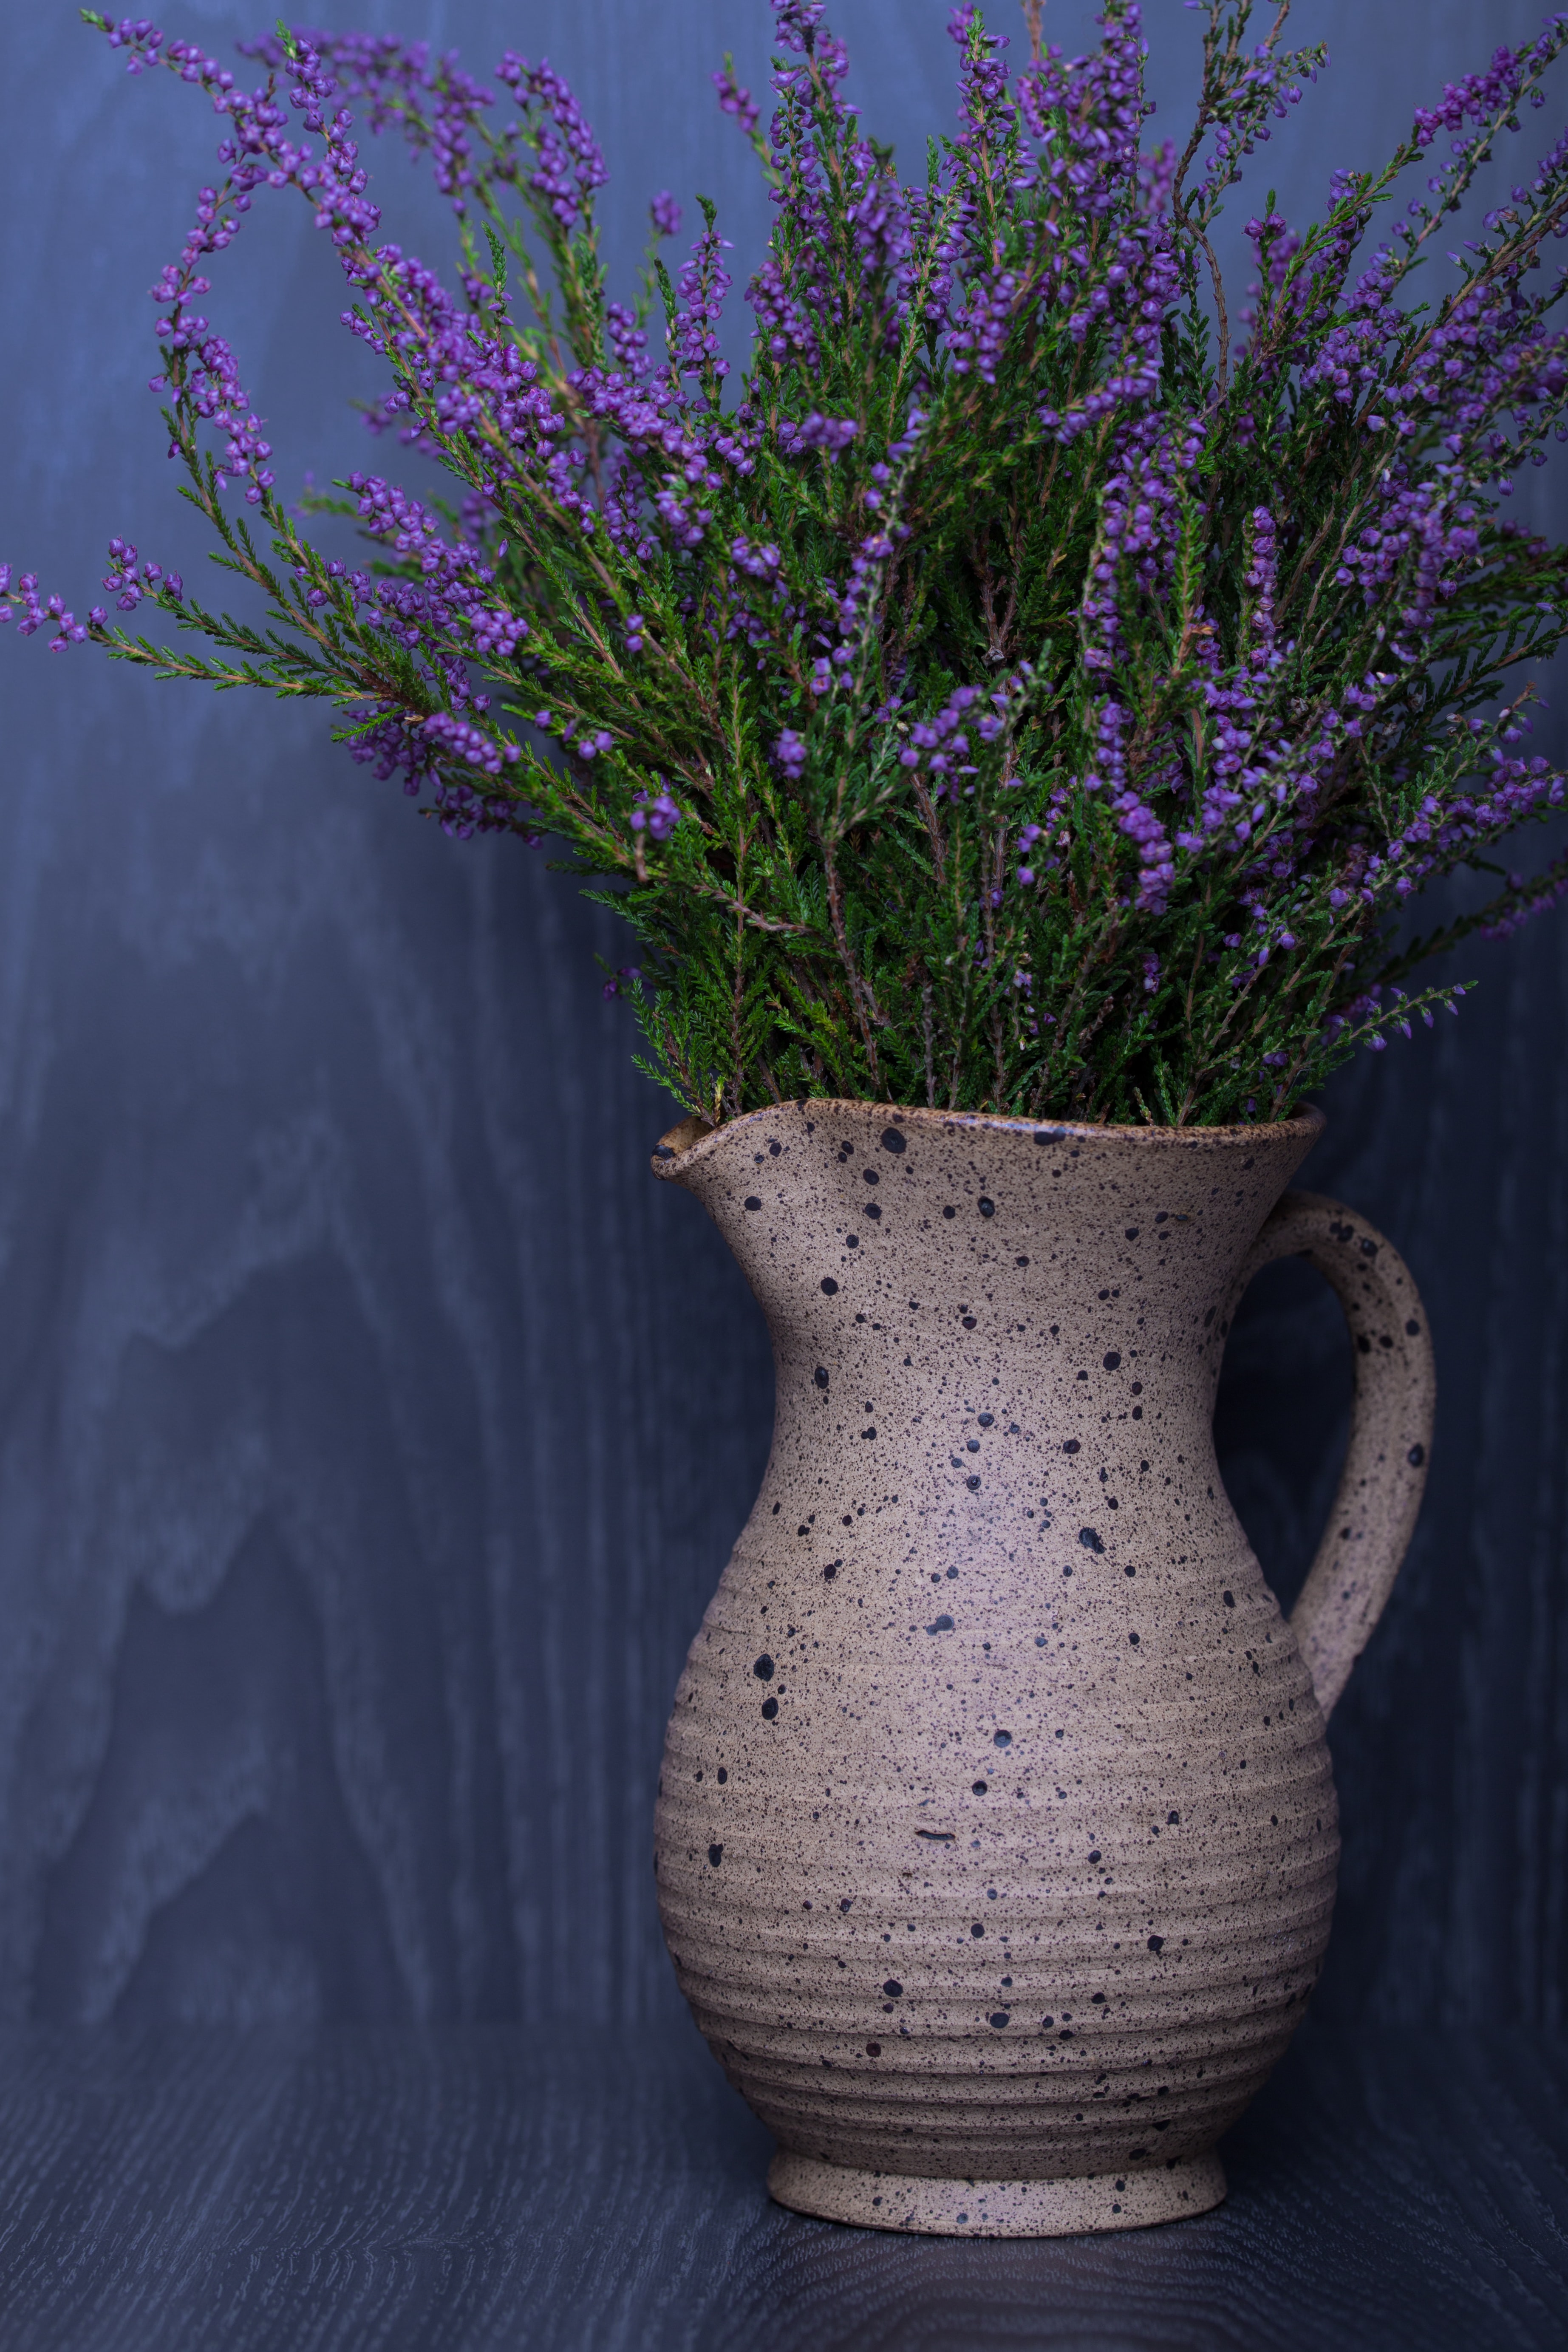 lavender flower in beige pitcher vase